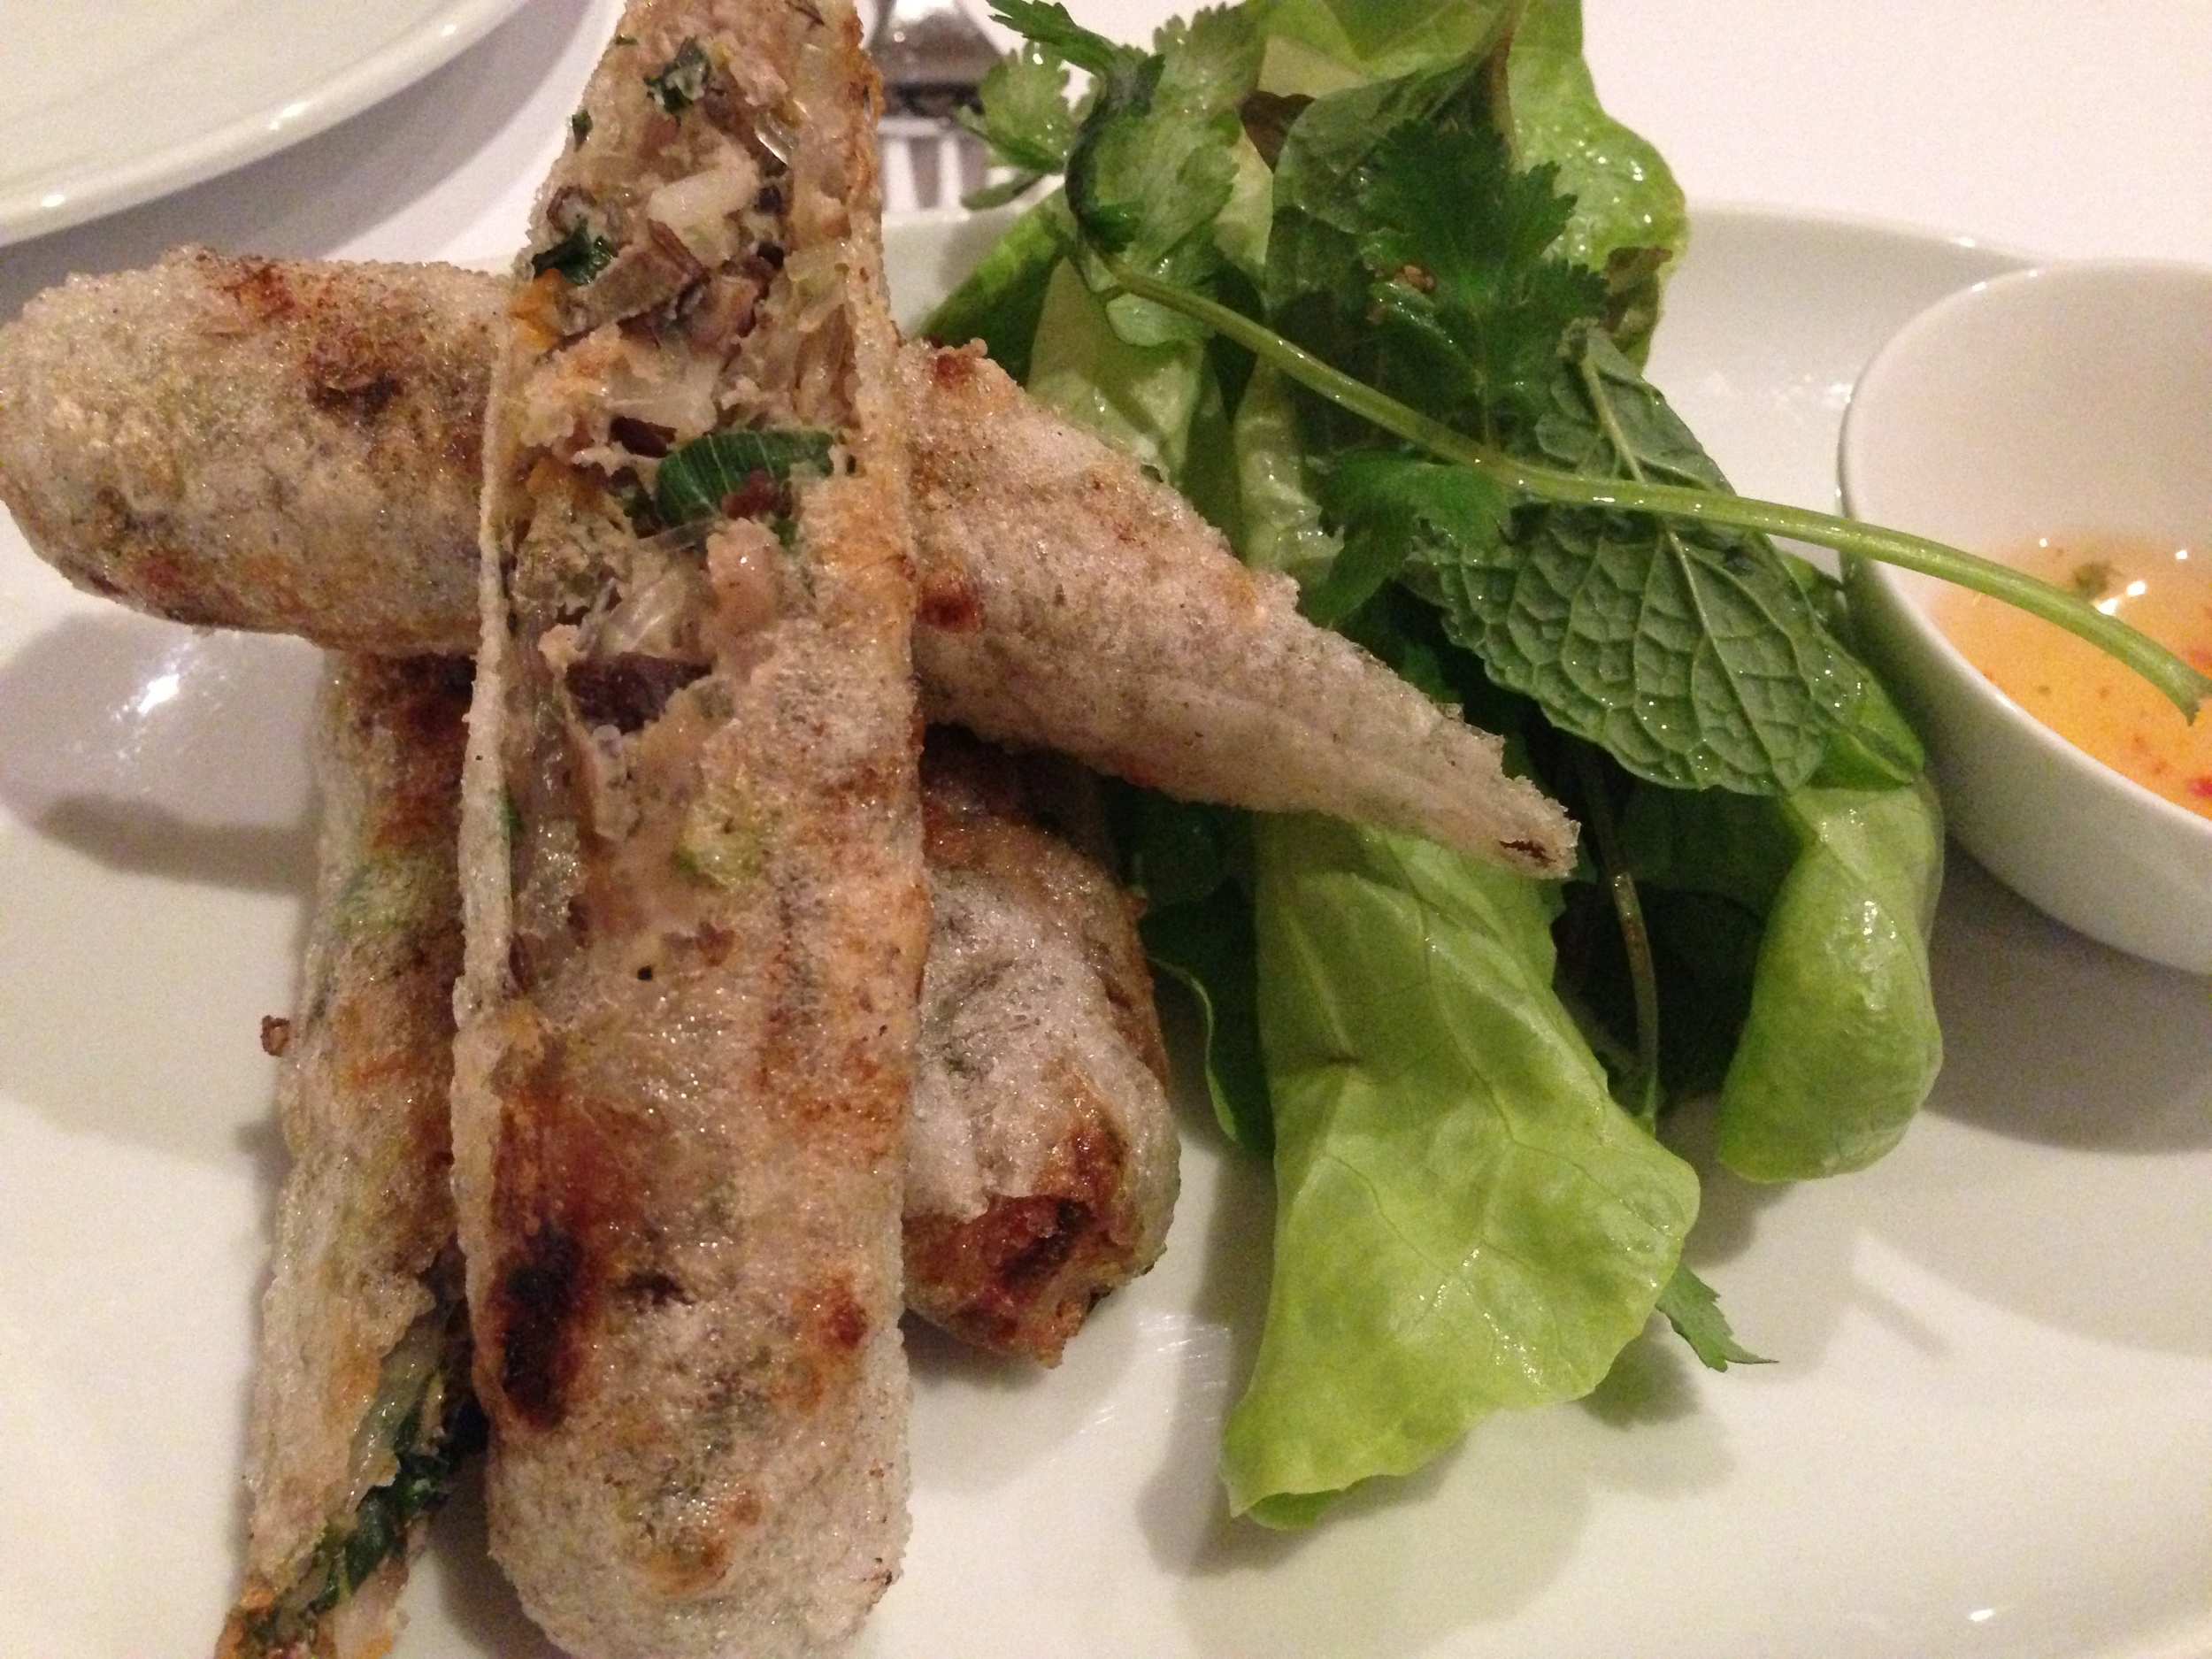 Hanoi spring rolls with salad of fresh herbs and 